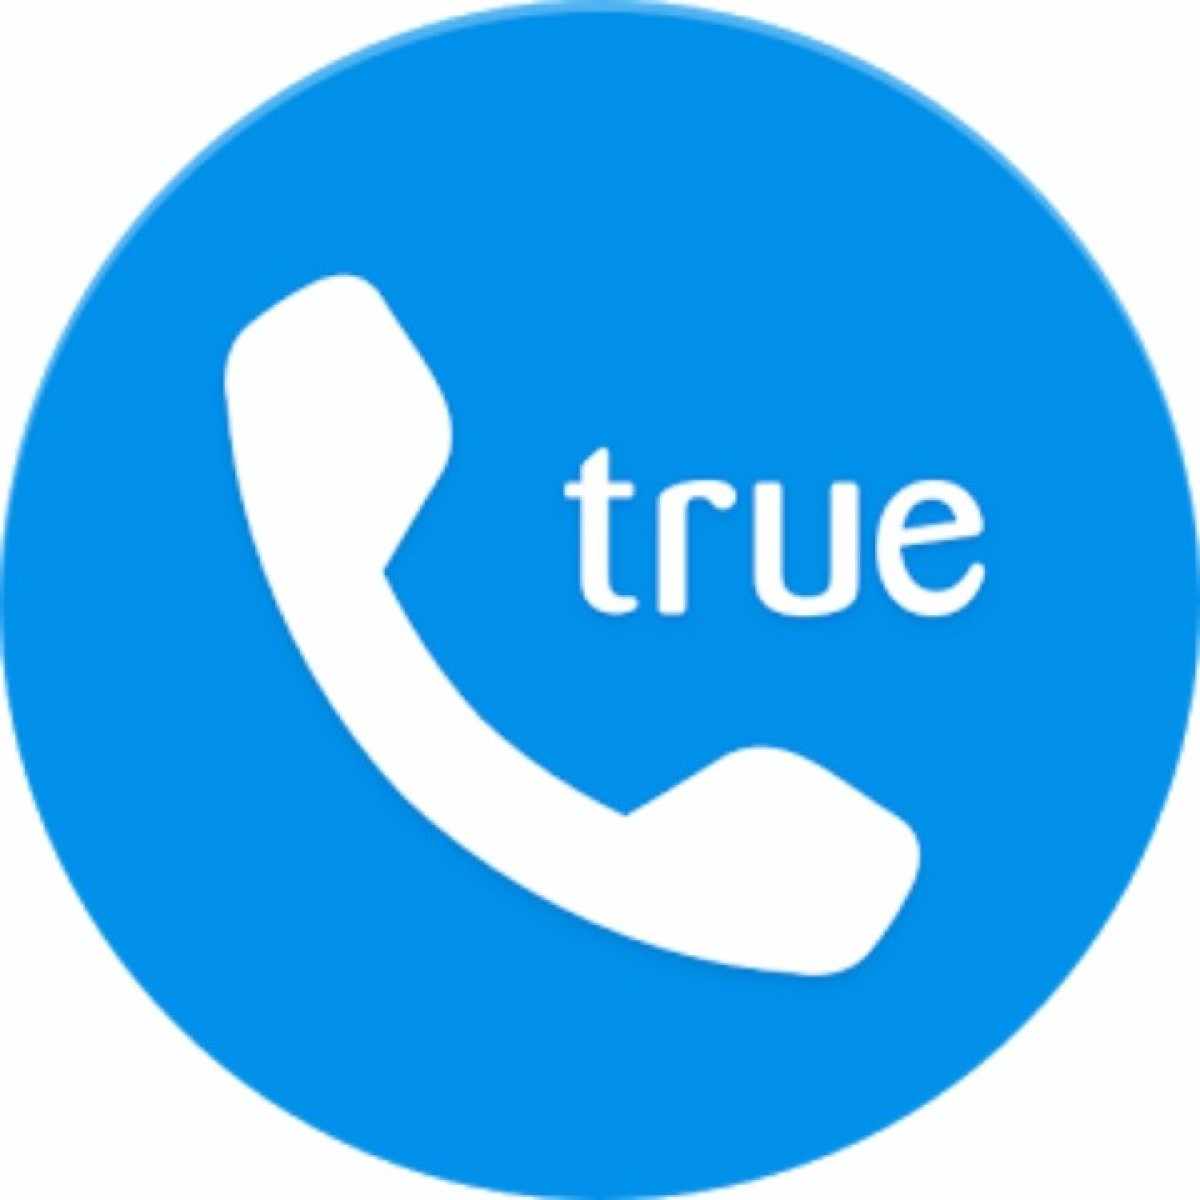 Truecaller Premium 11.33.8 Crack APK Free Download 2021